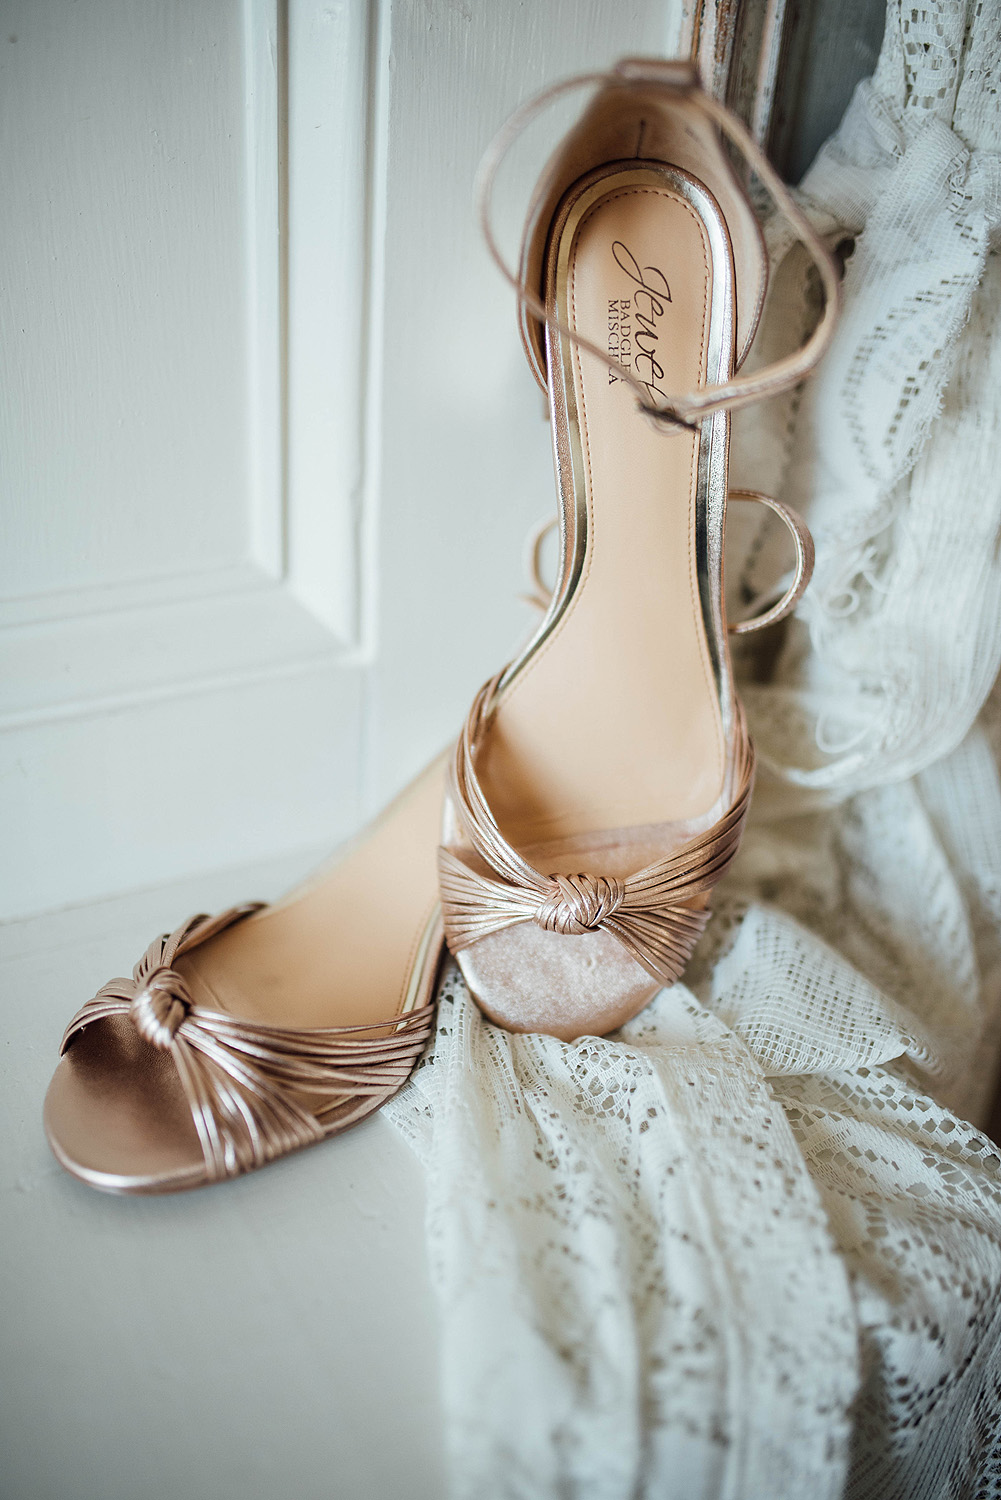 Juliet + Michael-race-and-religious-new-orleans-wedding_Gabby Chapin_Online_0037.jpg